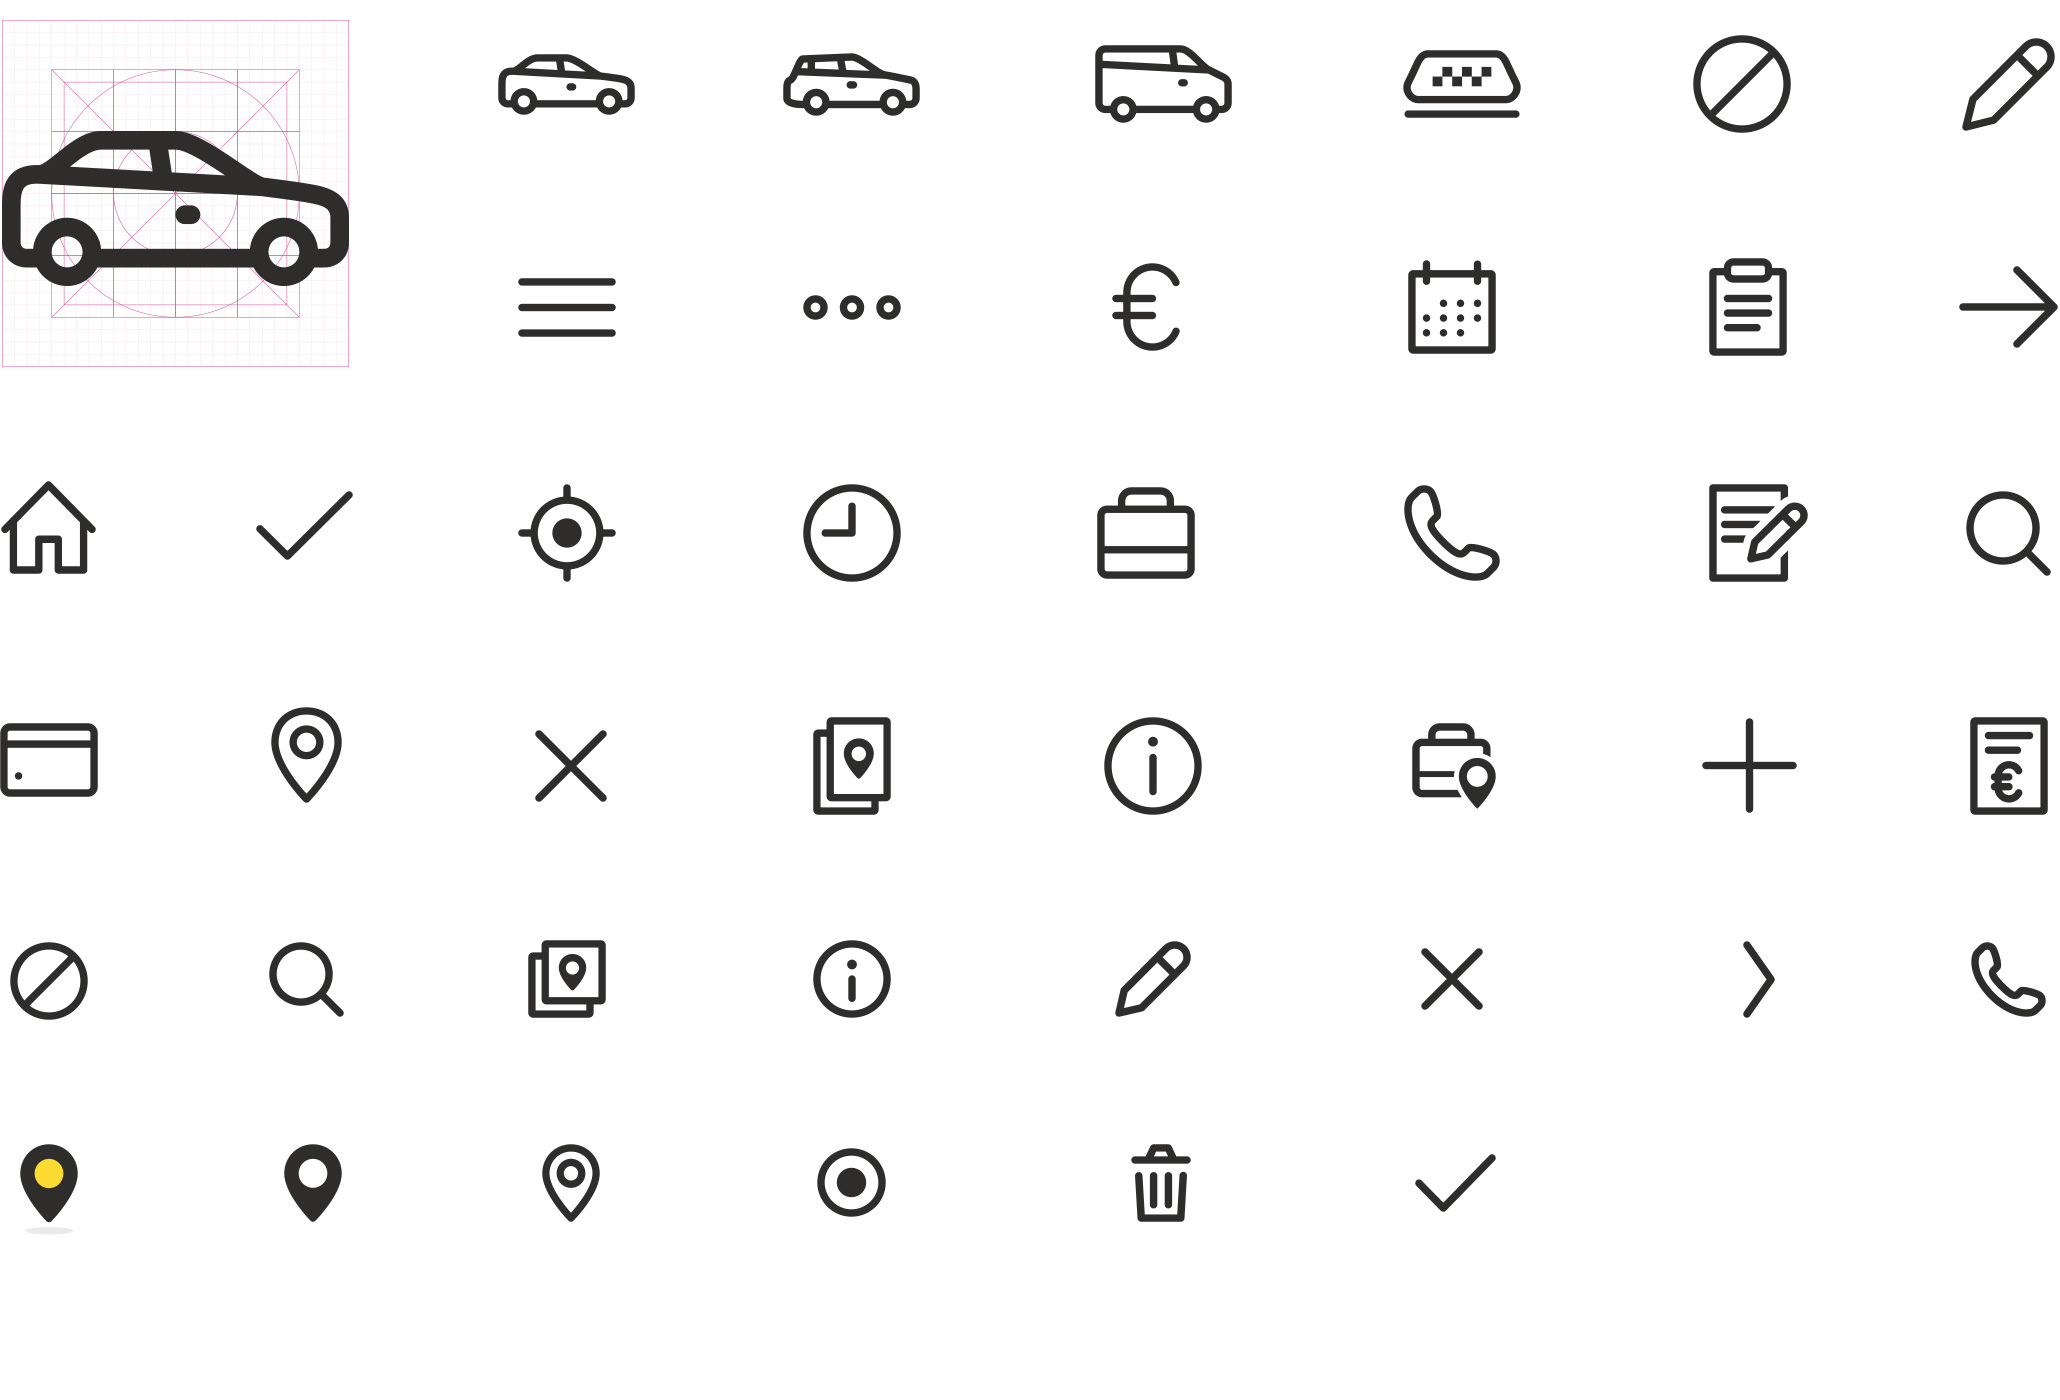 We created a fully customized icon set for Taksini which was converted into a font for easy implementation.